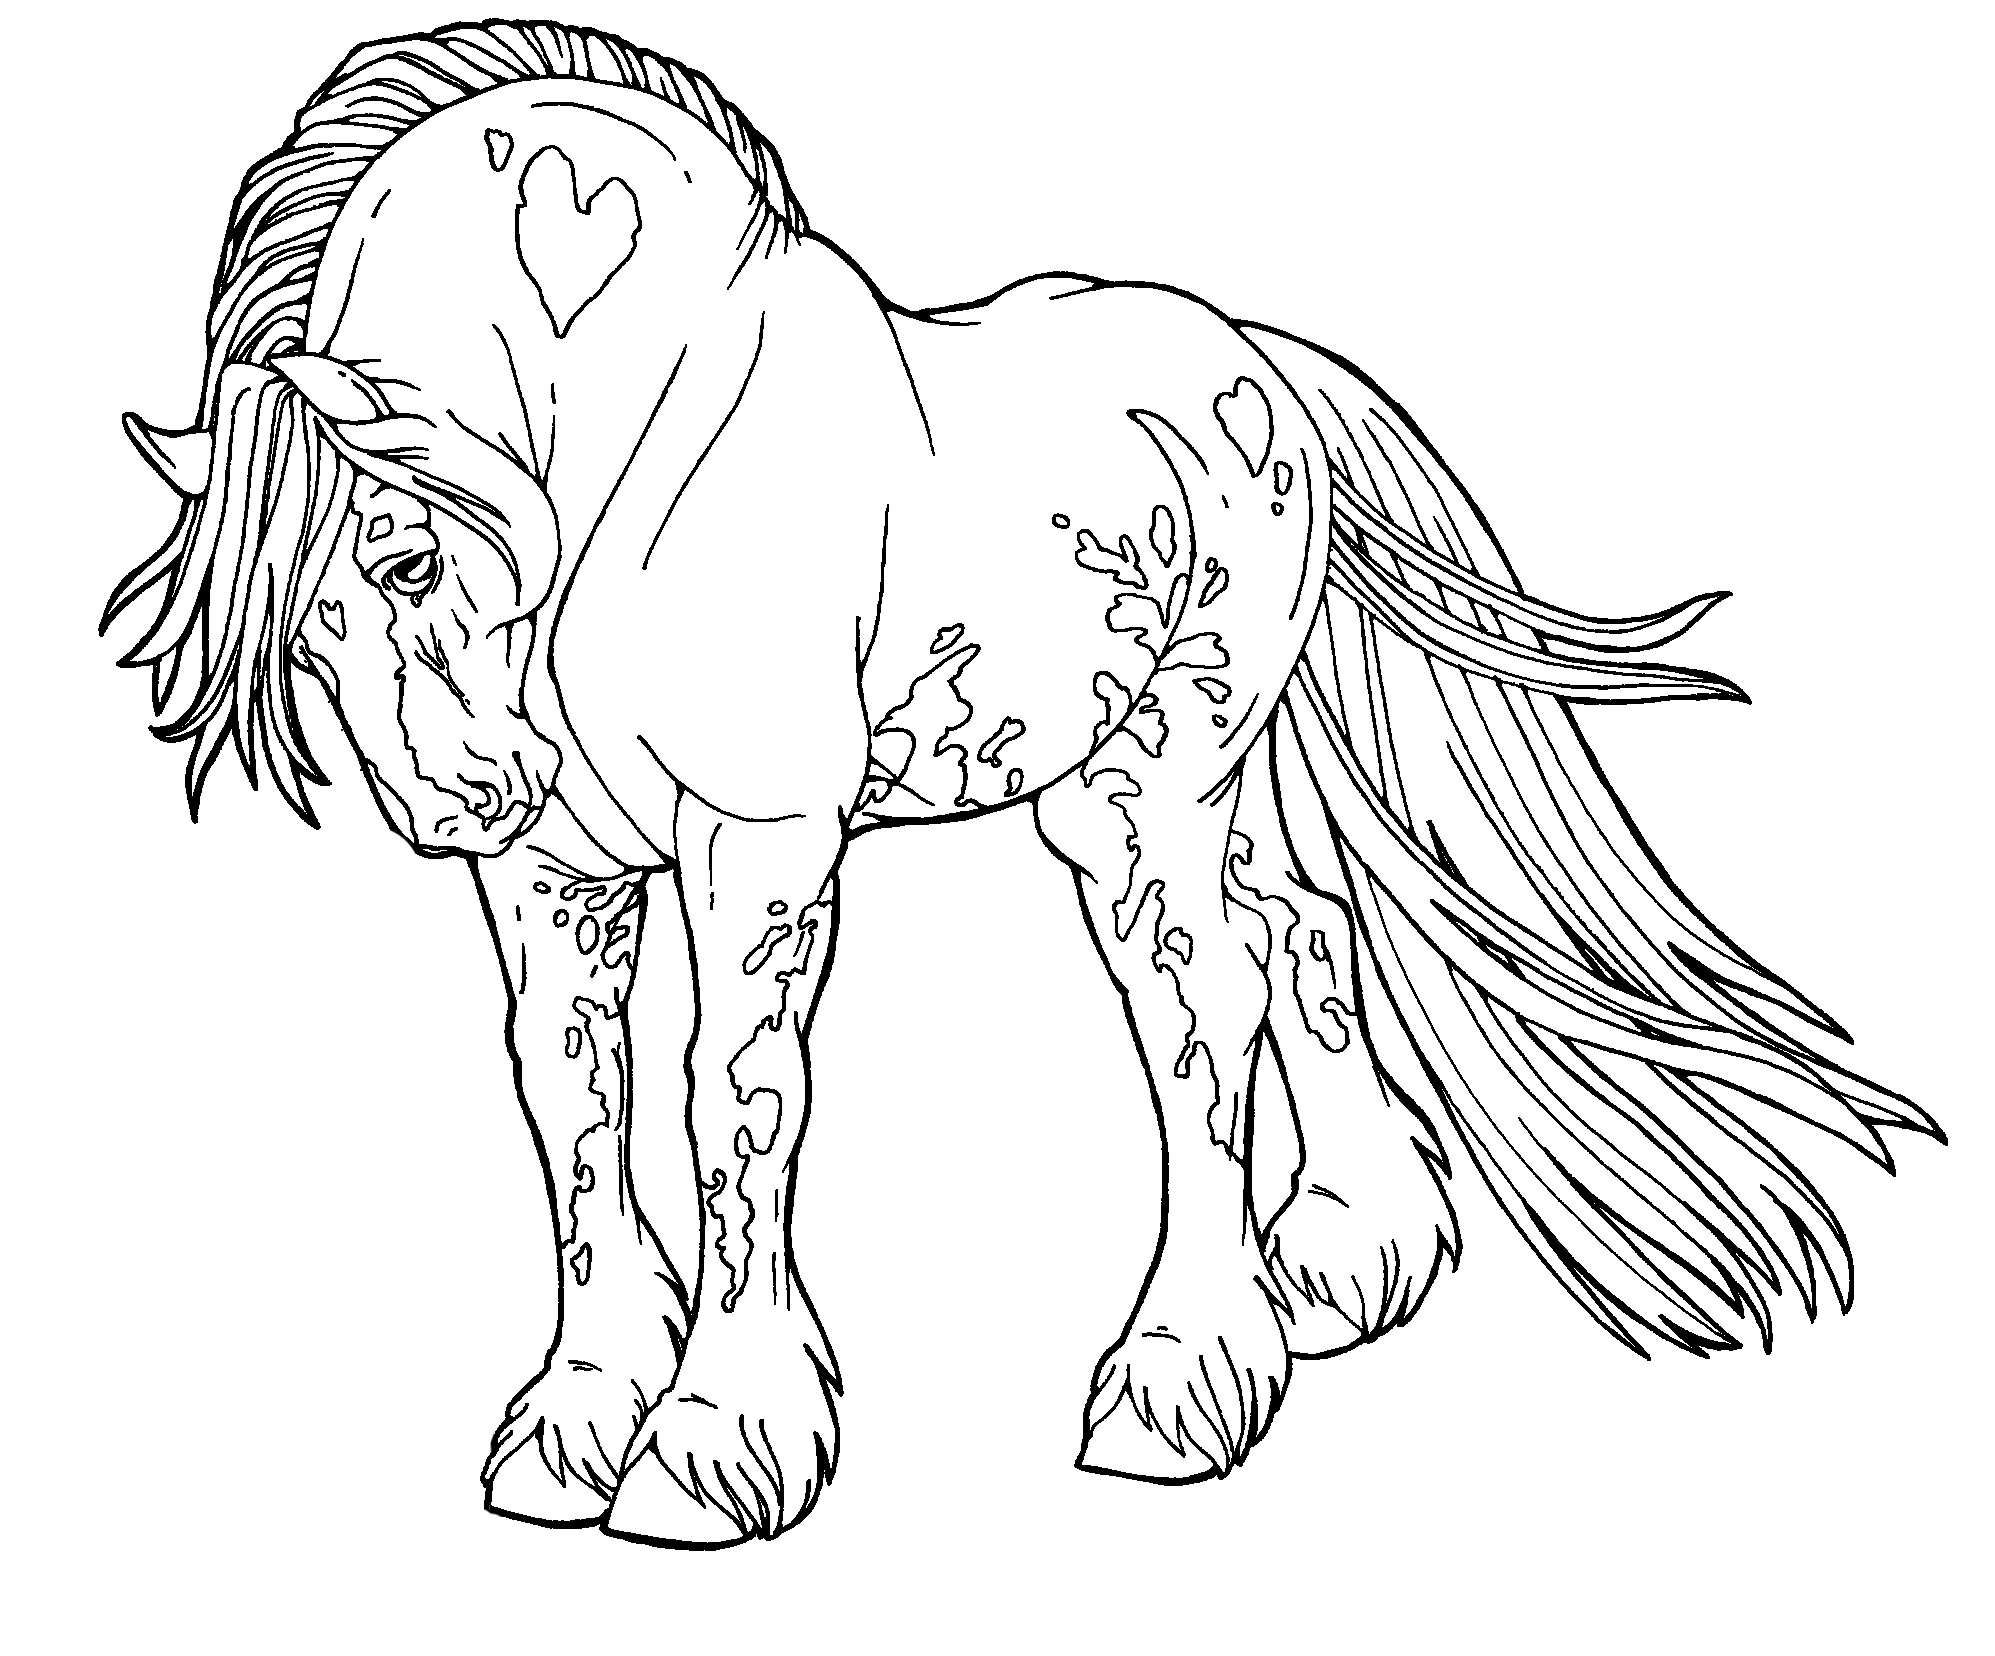 coloring picture color for kids insect coloring pages best coloring pages for kids for kids picture color coloring